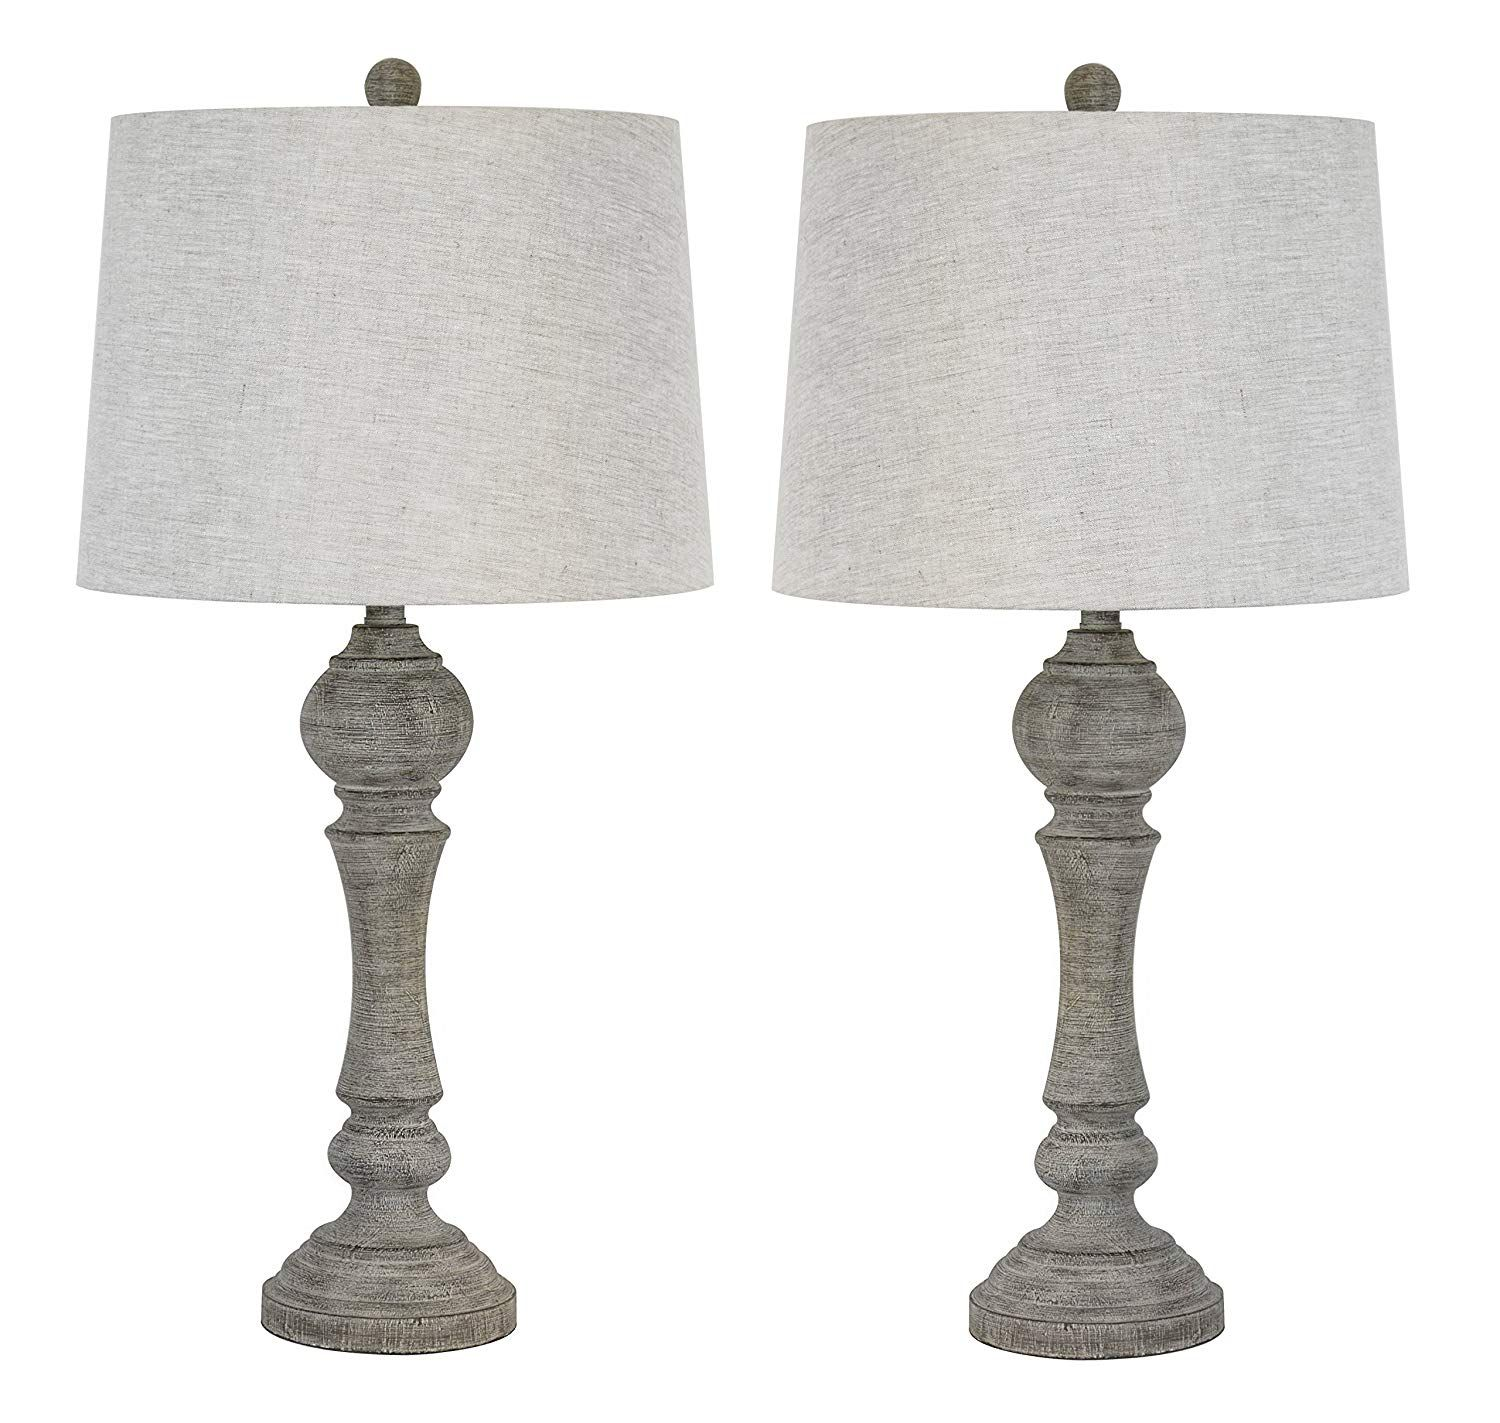 Lamps To Fit Your Farmhouse Classic Or Coastal Style Grandview Gallery 32 Reclaimed Grey Table Lamps W Linen Linen Lamp Shades Grey Table Lamps Table Lamp